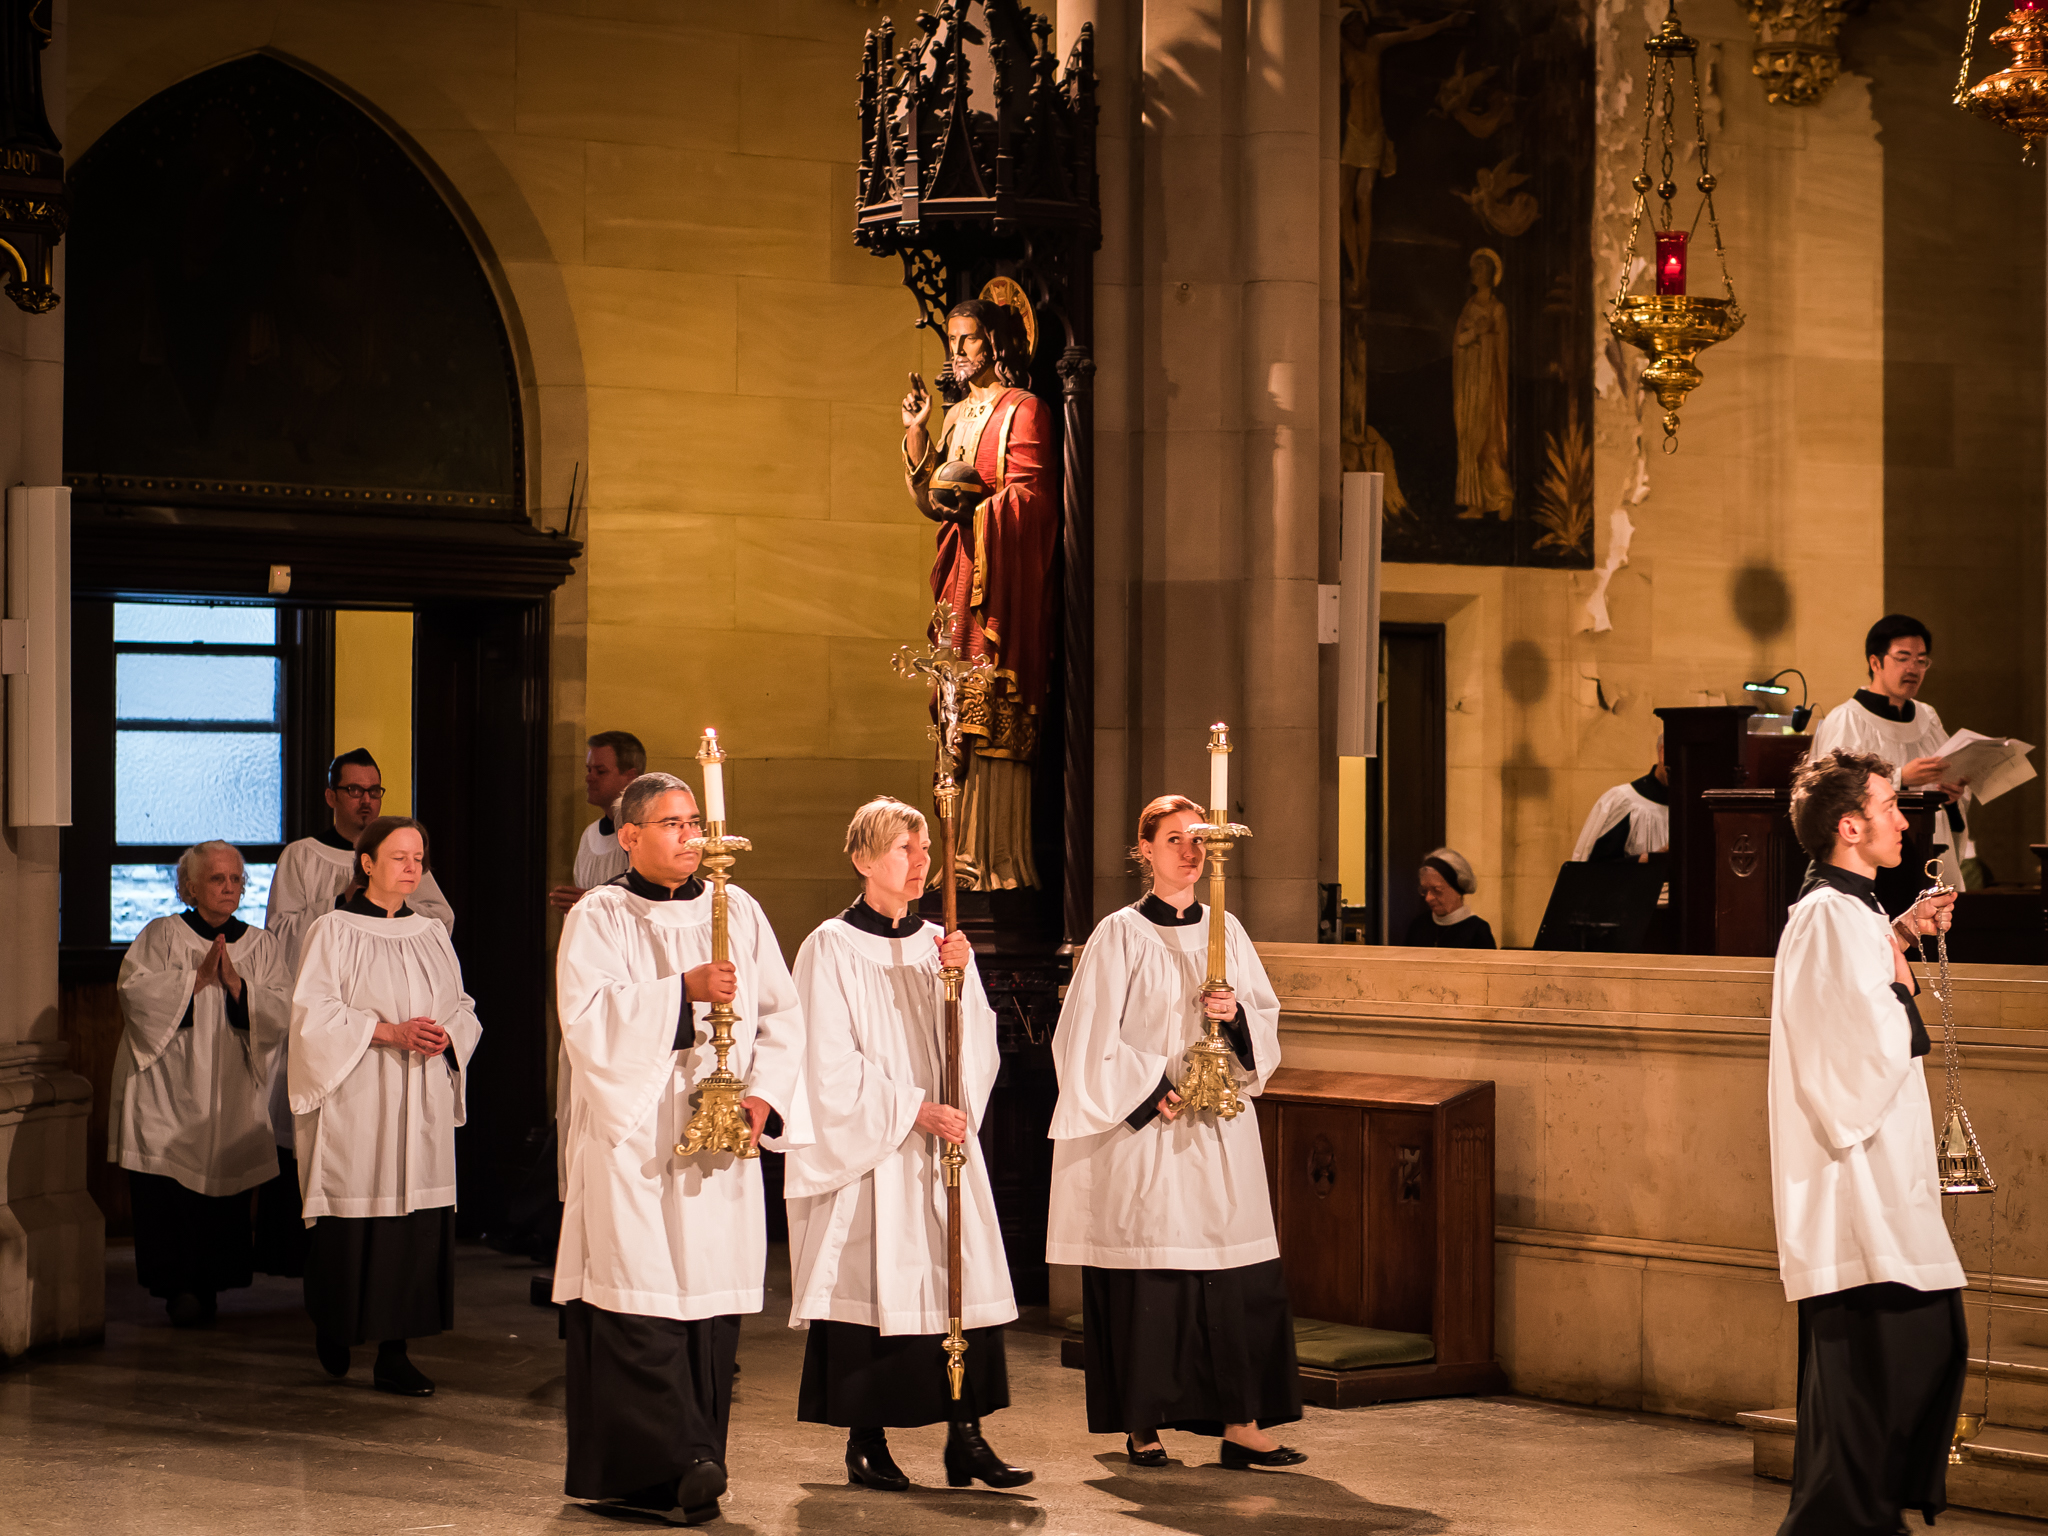 """The Entrance Procession. Cantor Jonathan May is singing the introit. Incense is not offered during the entrance unless a bishop is celebrant. Incense will be offered during the singing of """"Glory to God in the highest.""""  Photo by Ricardo Gomez"""